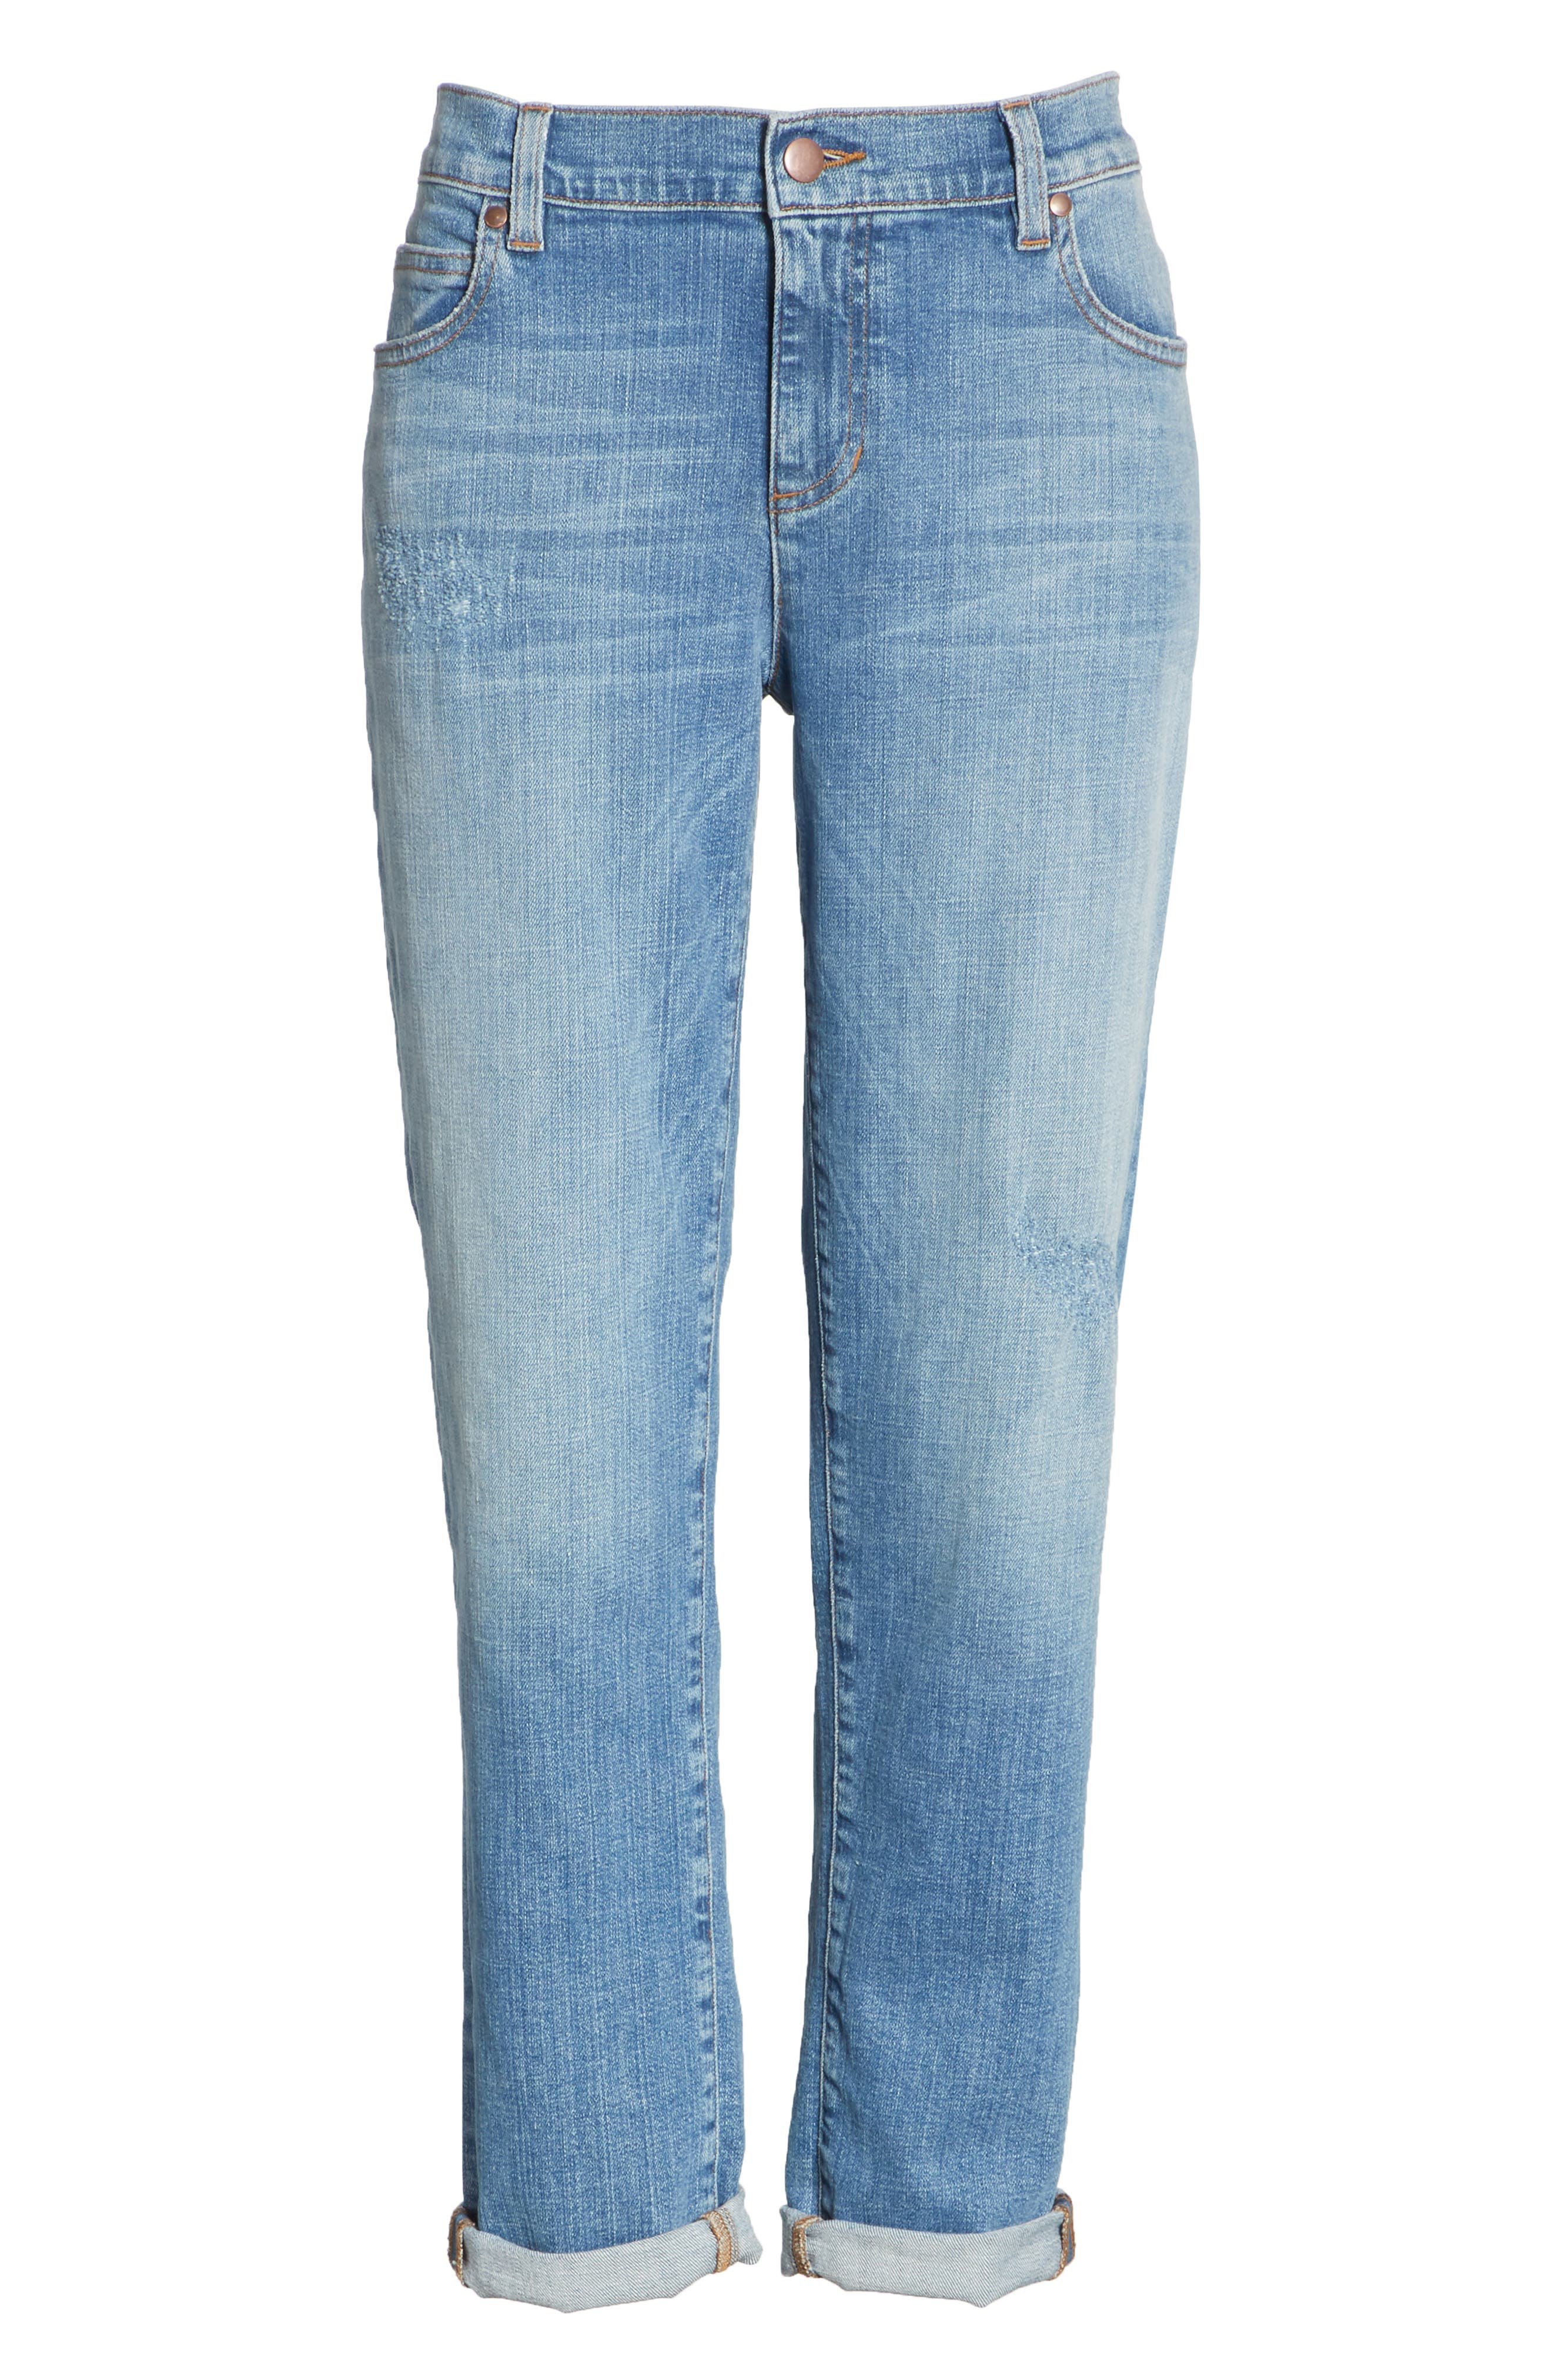 Stretch Organic Cotton Boyfriend Jeans,                             Alternate thumbnail 7, color,                             ABRADED SKY BLUE